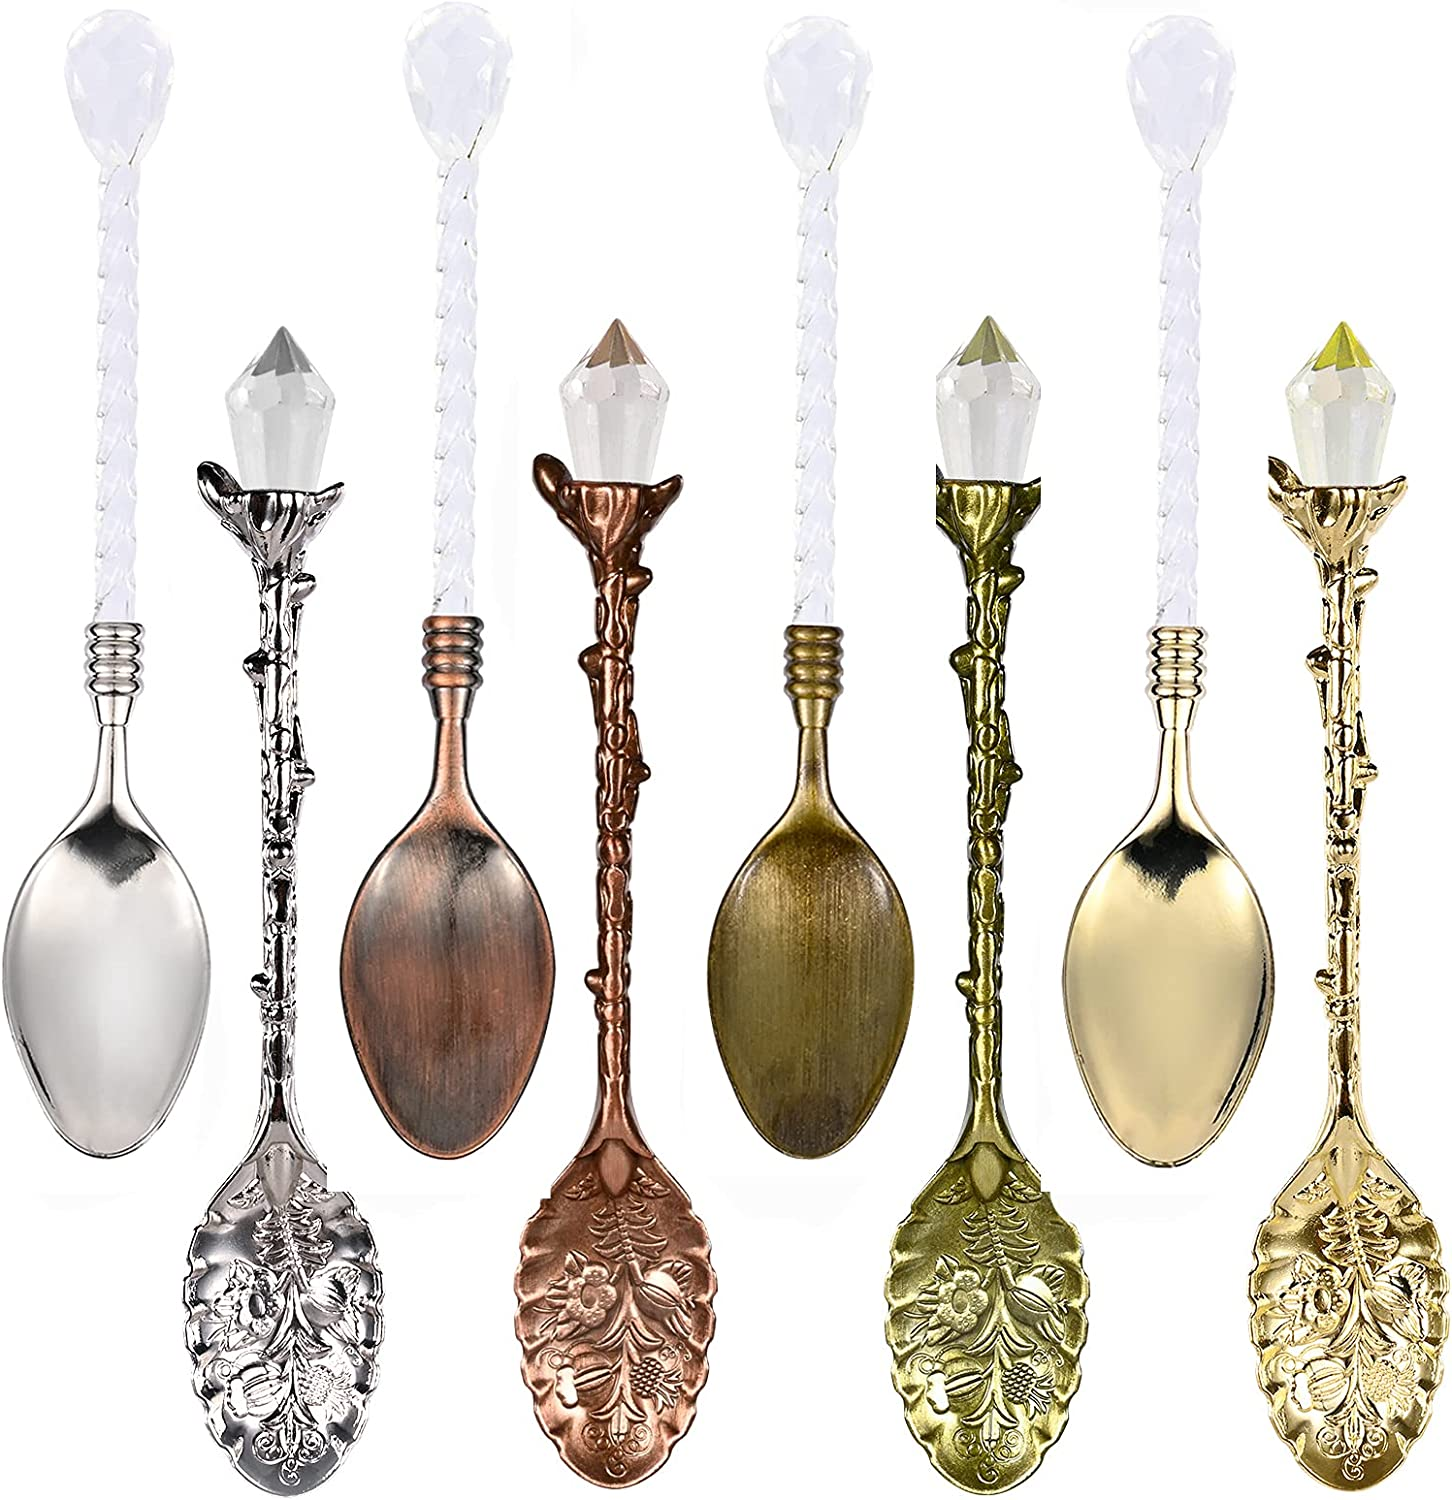 YAIKOAI 8 Pieces Retro Coffee Tea Spoon with Crystal Ice Cream Dessert Spoons Alloy Vintage Stirring Scoop Teaspoon for Home Kitchen Office Cafe Bar Gadgets, 4 Color